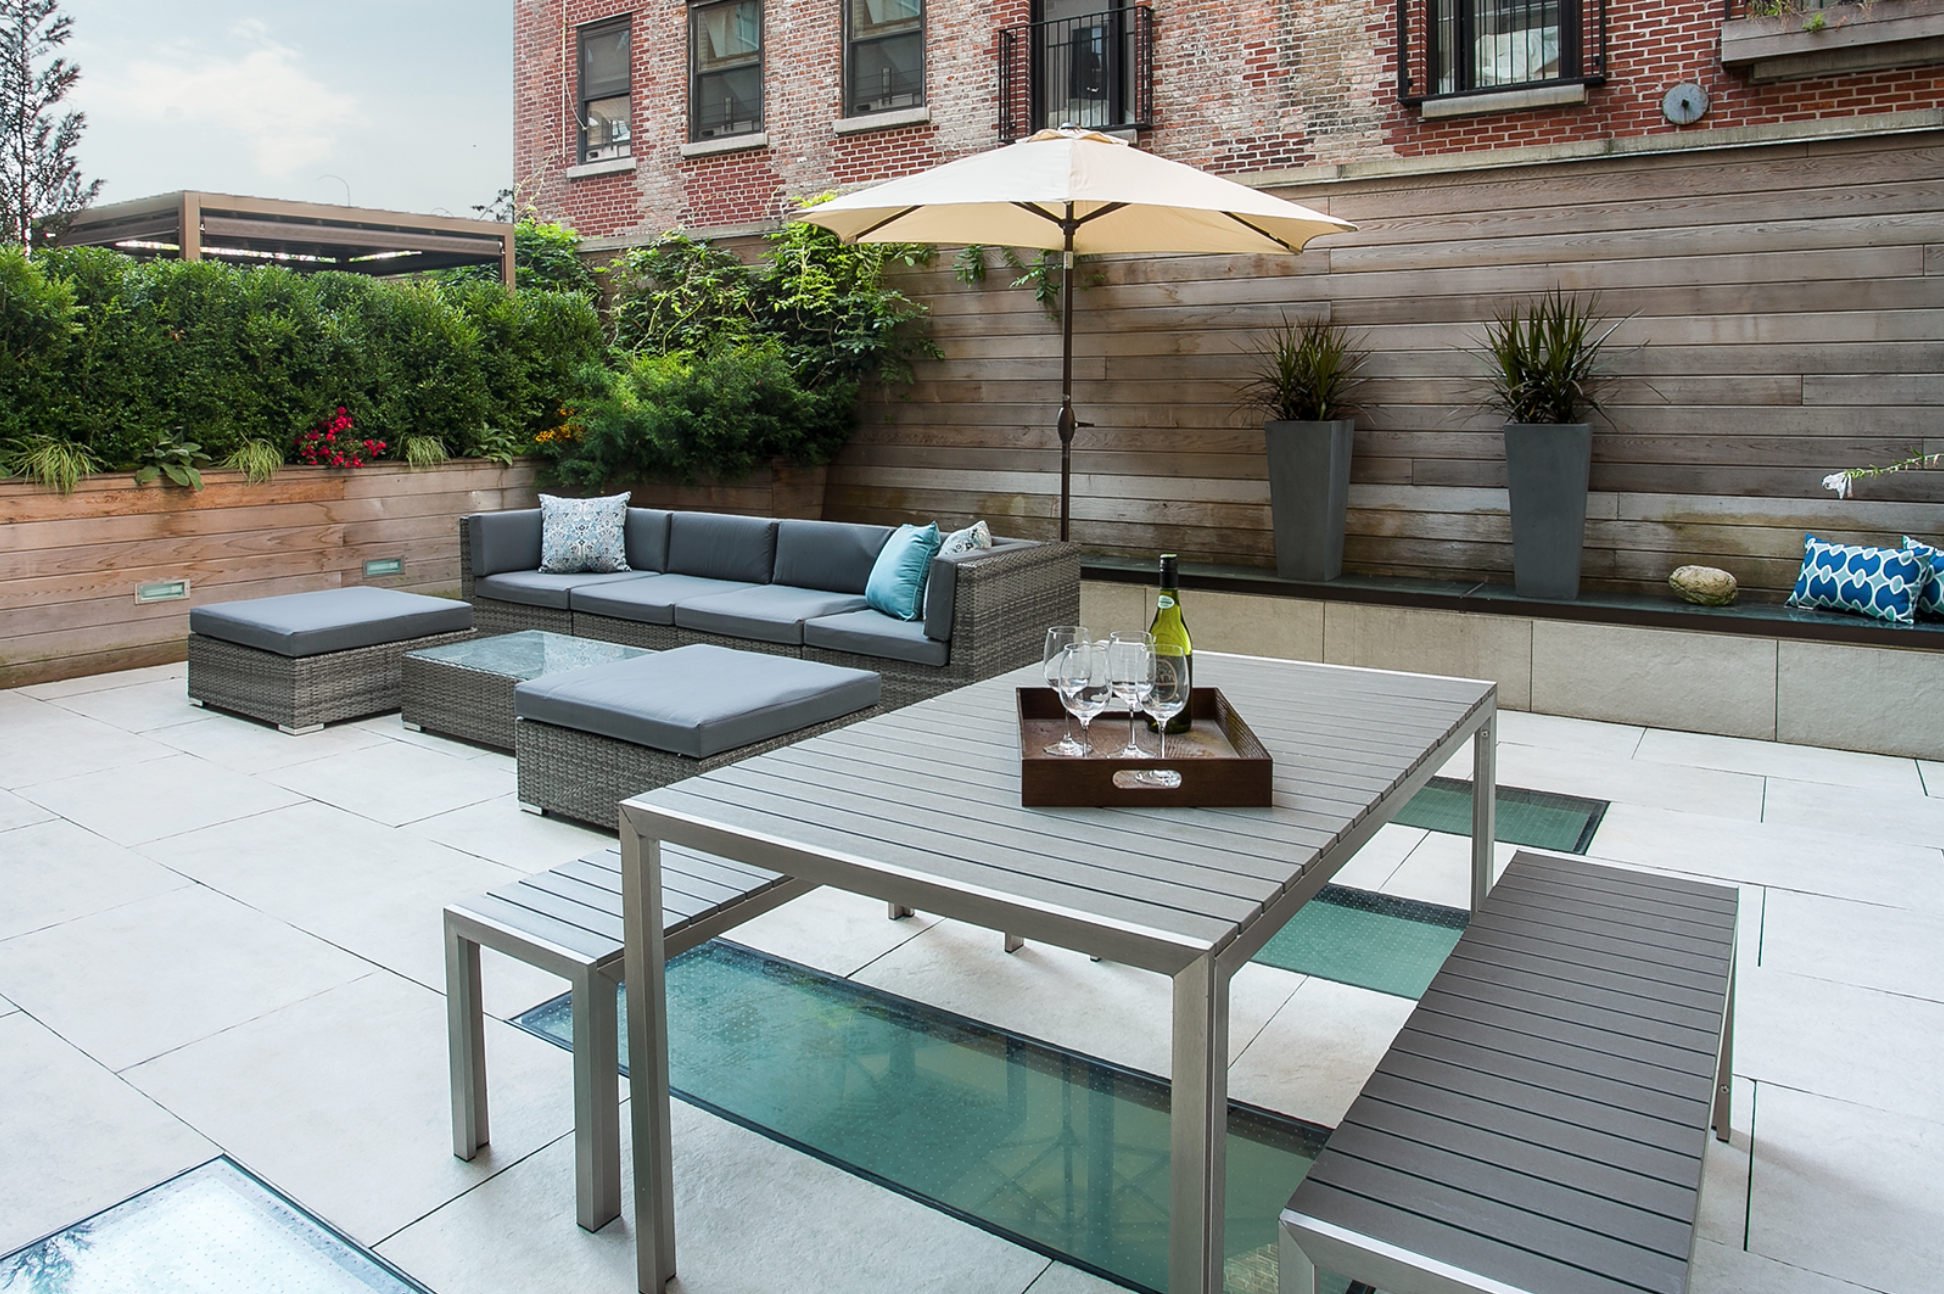 Featured Listing: Tour a Luxurious West Village Townhouse With Private Garden Listed for $11.495 Million